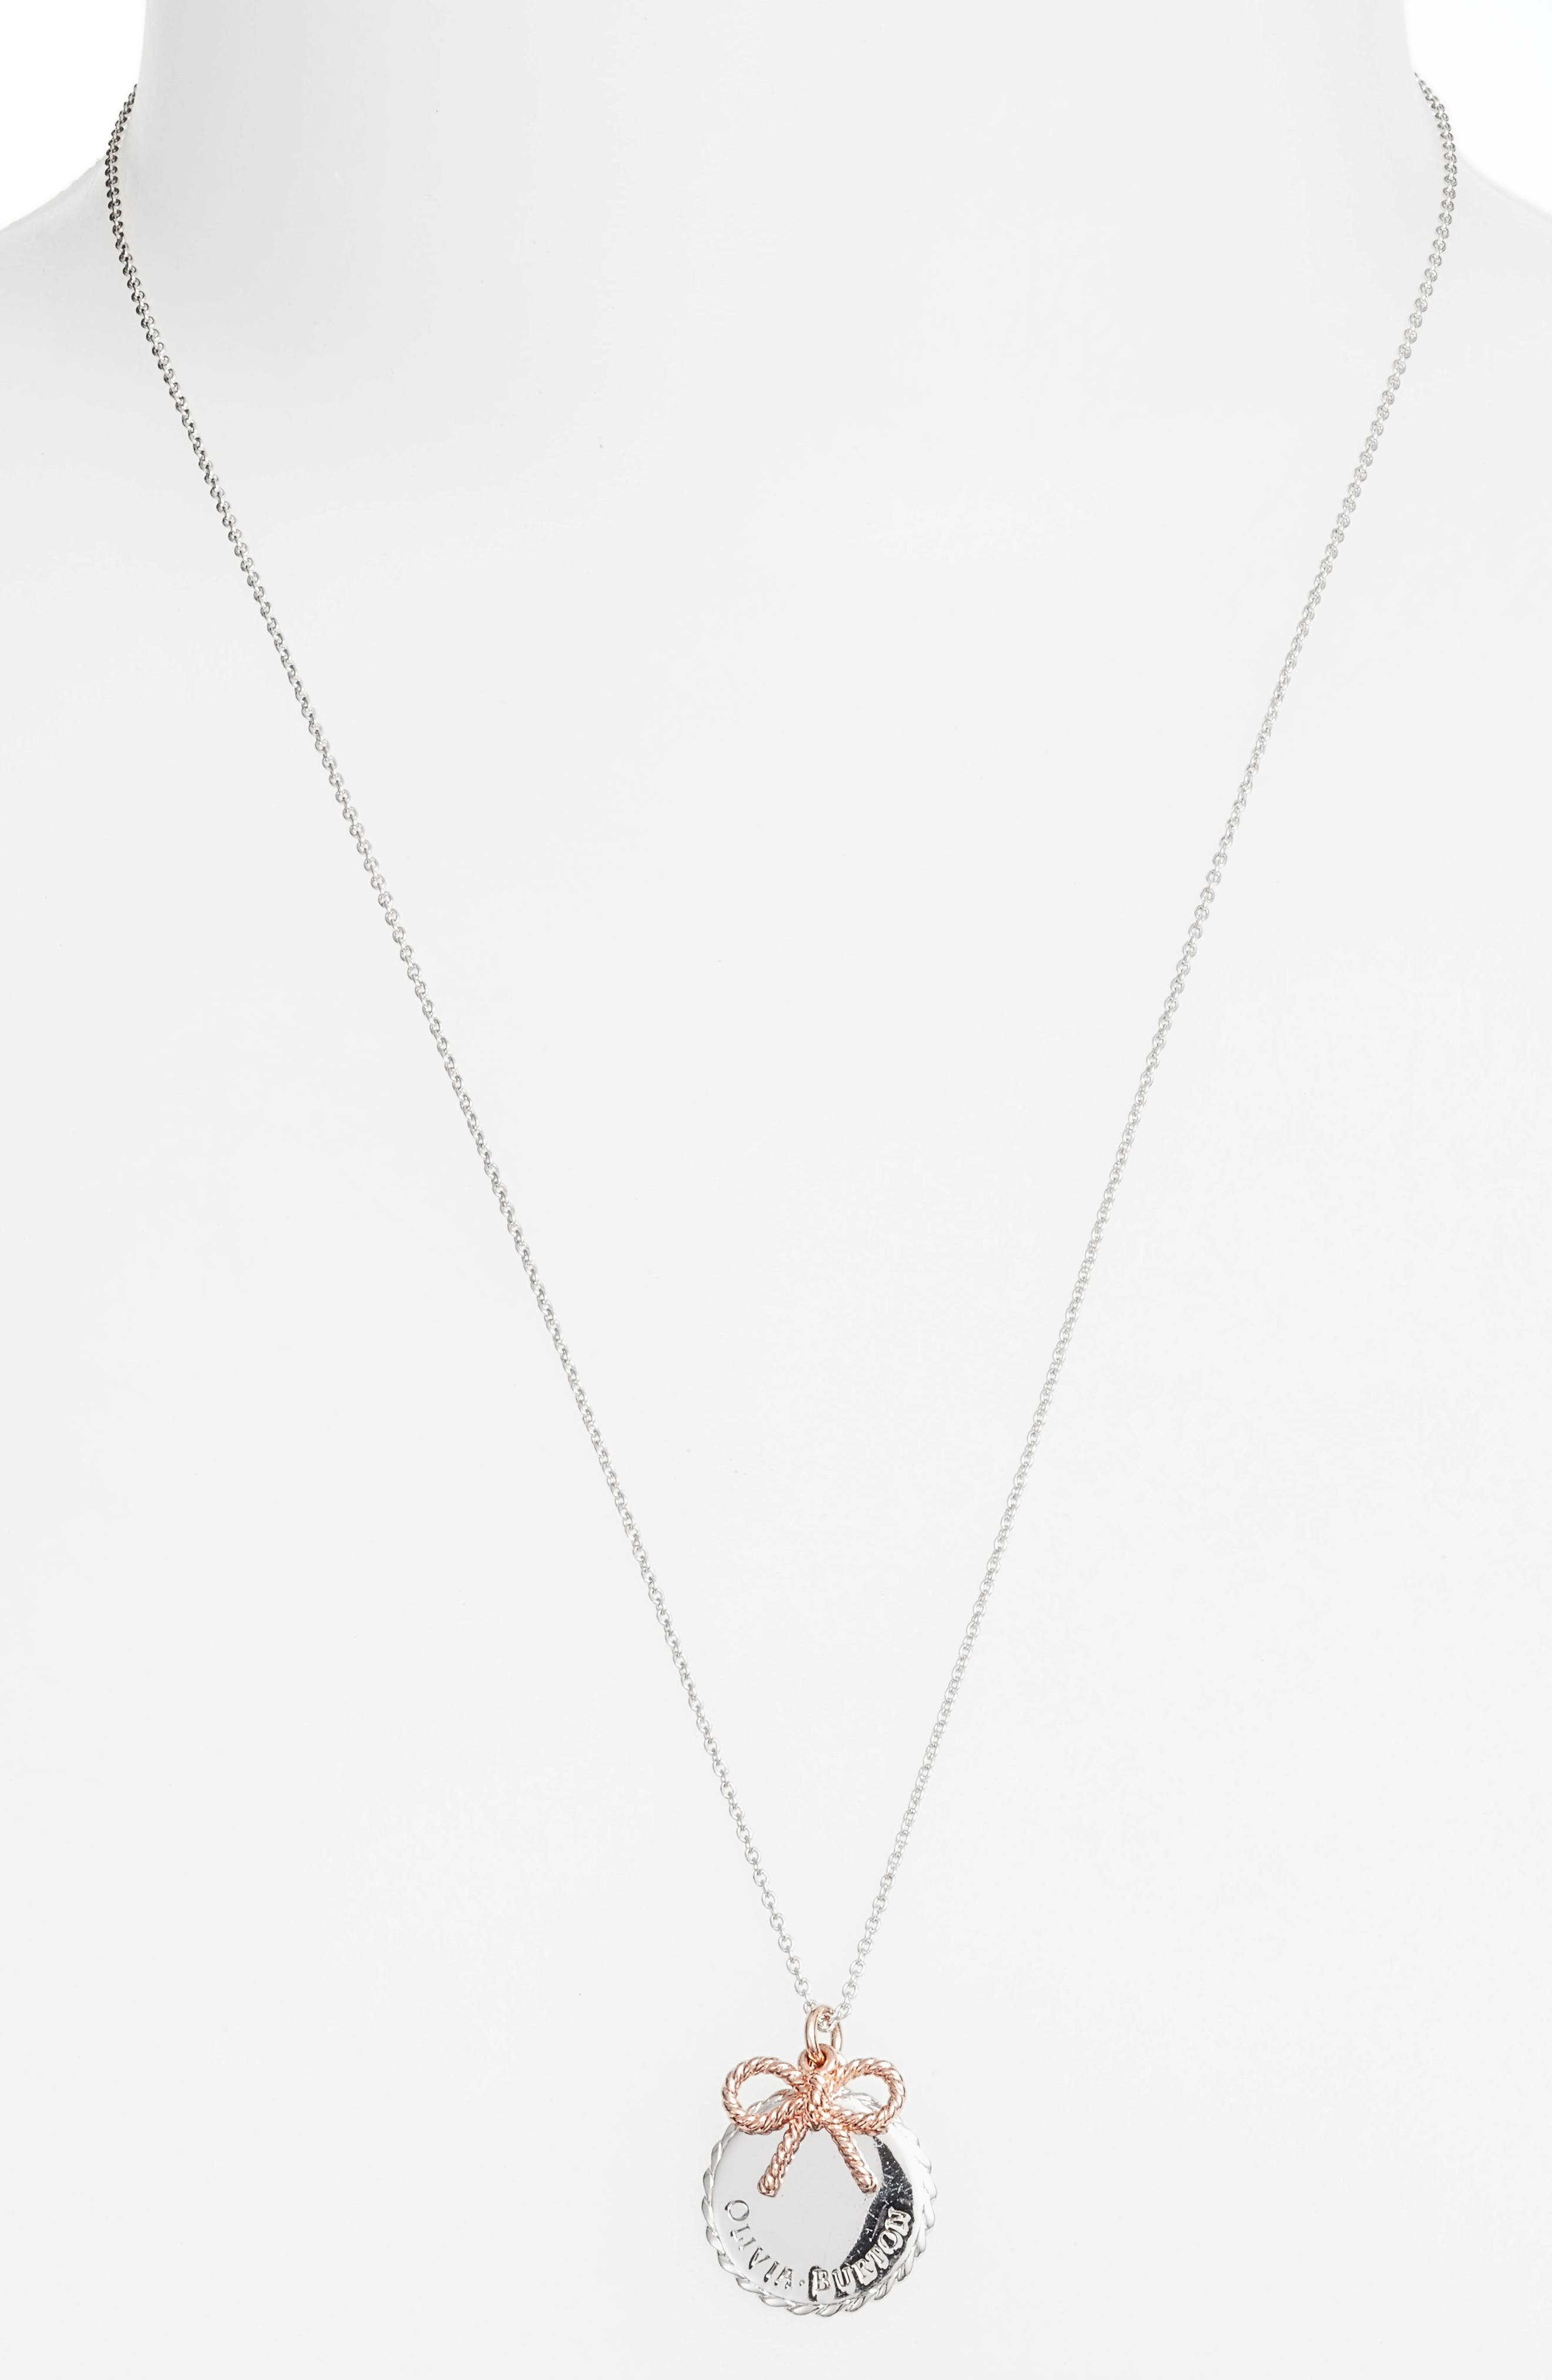 Coin & Bow Pendant Necklace,                             Main thumbnail 1, color,                             Silver/ Rose Gold